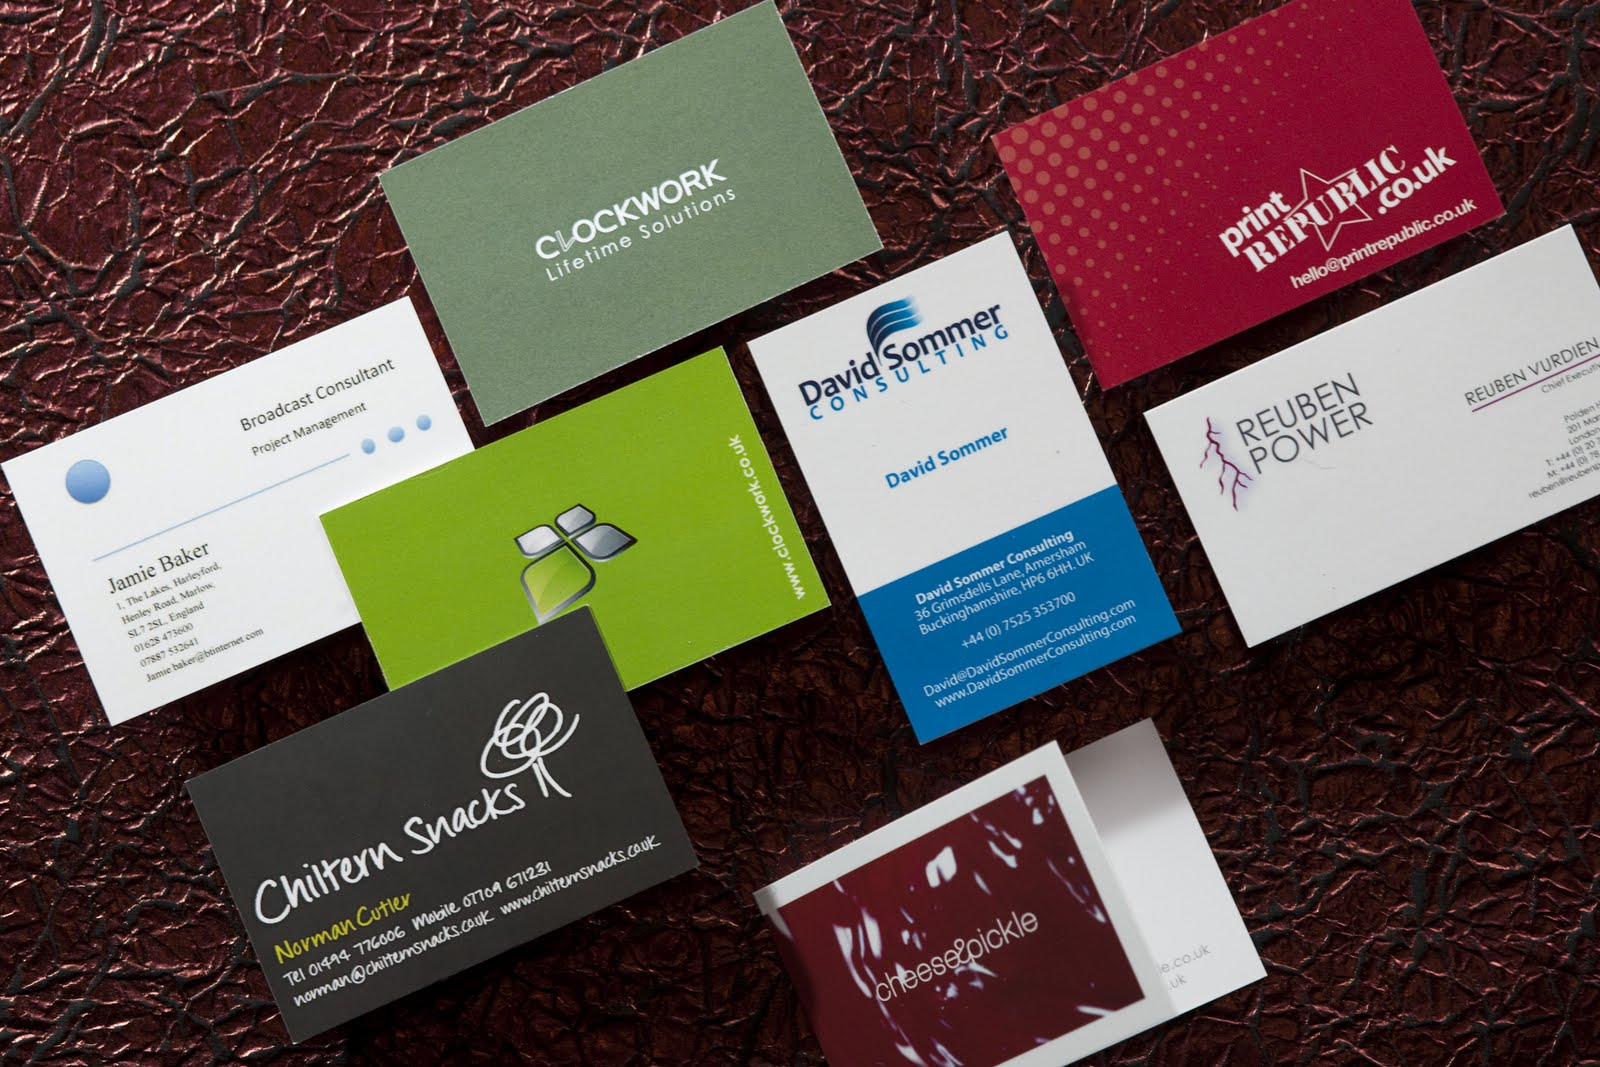 Print business cards online dubai images card design and card template business cards dubai jlt images card design and card template business cards dubai jlt choice image reheart Image collections